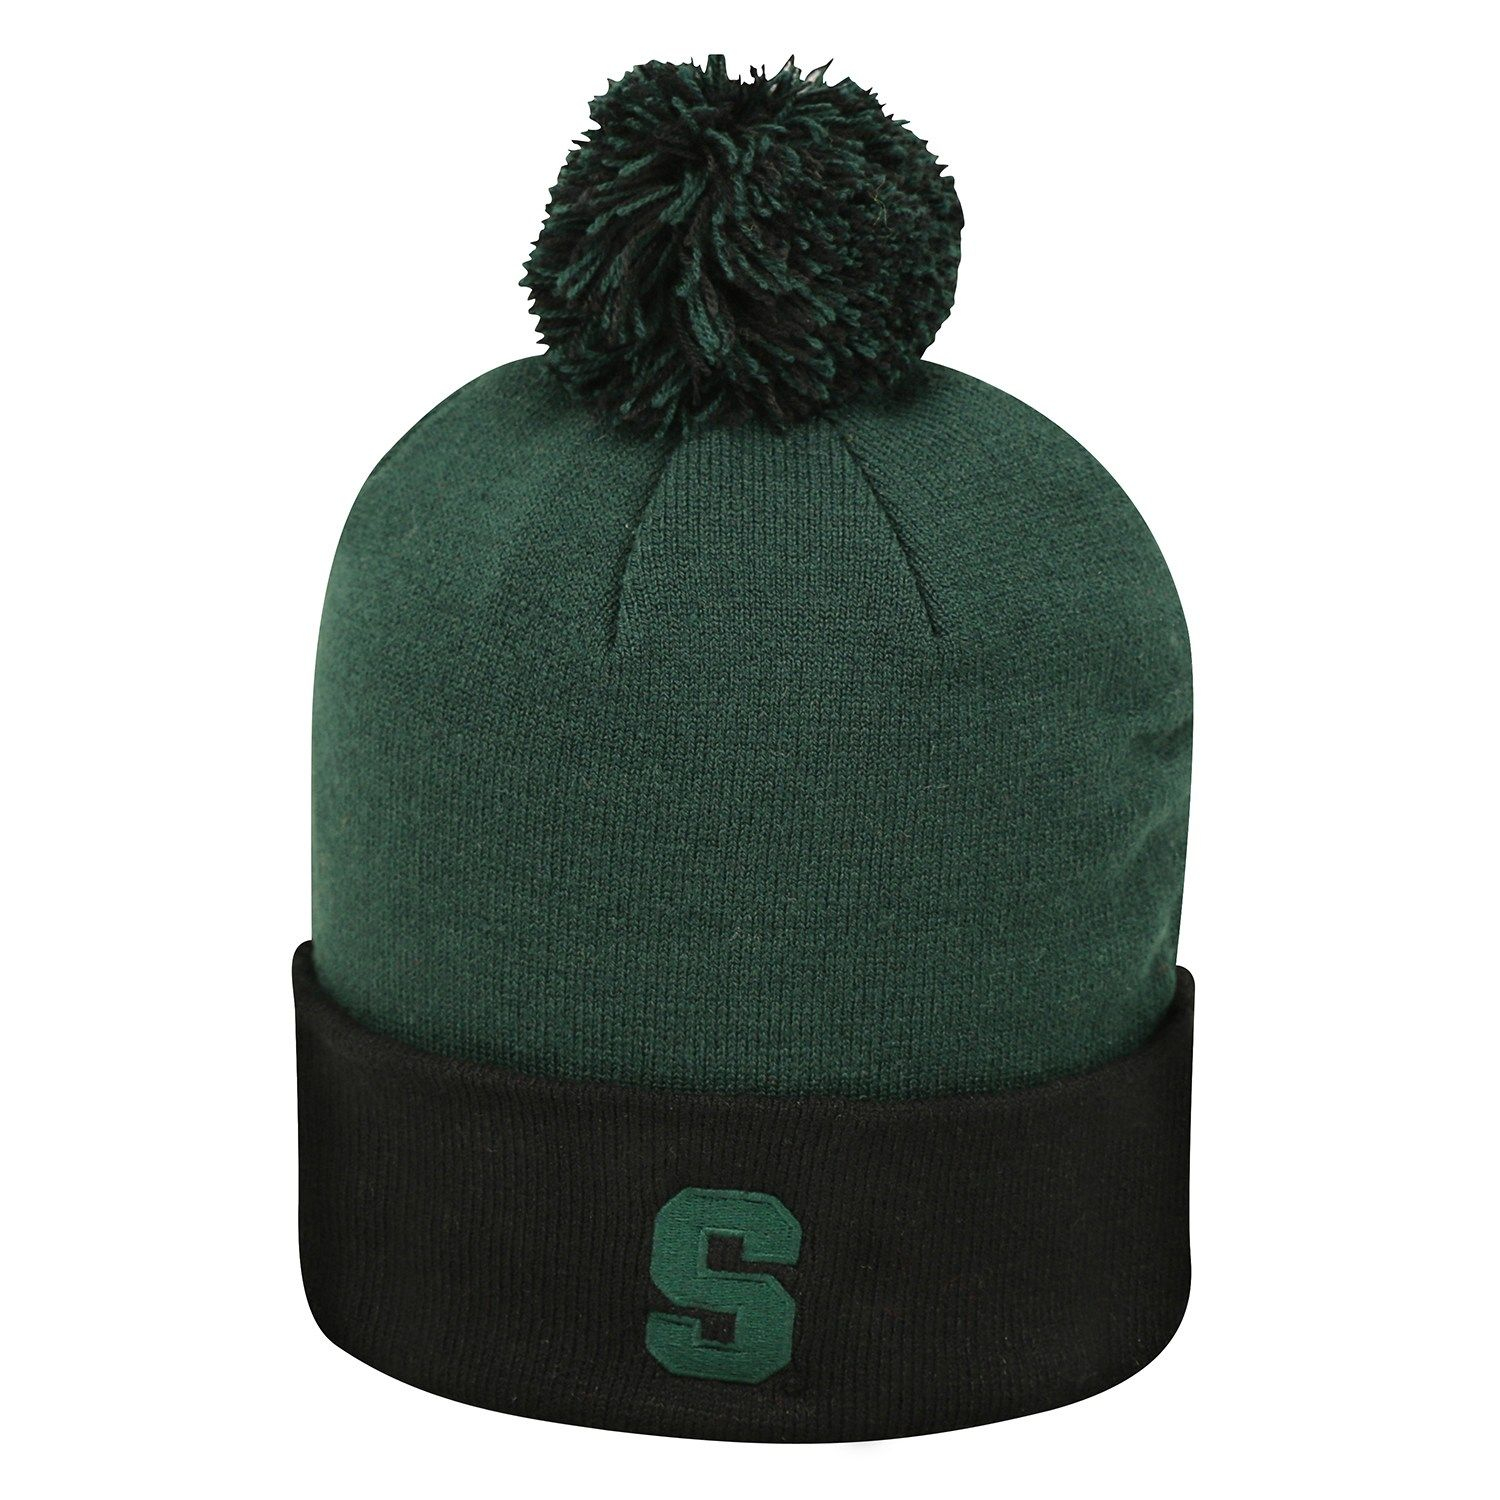 50a6926b62b Adult Top of the World Michigan State Spartans Pom Knit Hat in 2019 ...